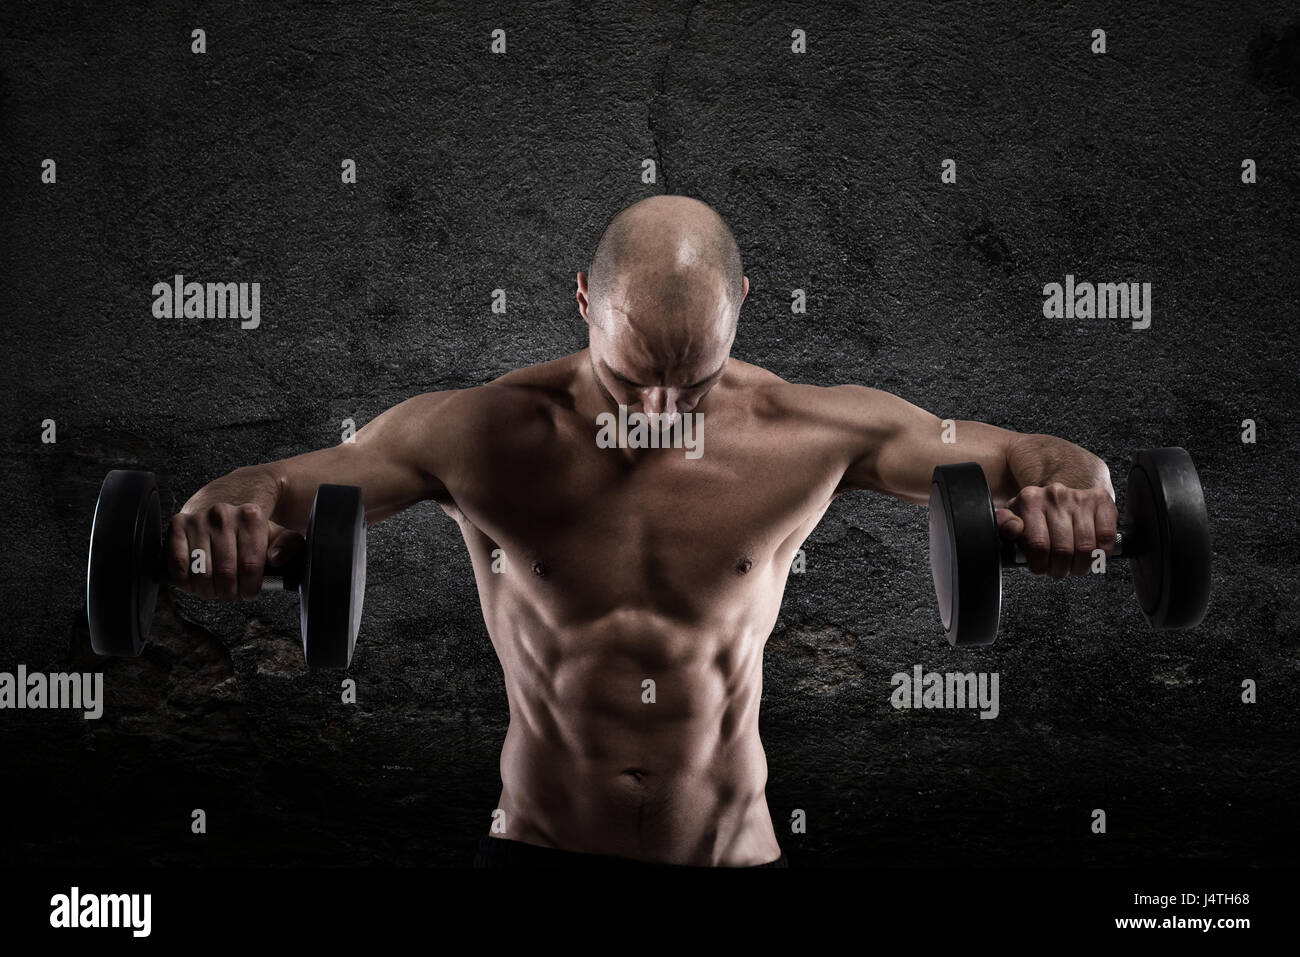 Athletic man workout - Stock Image